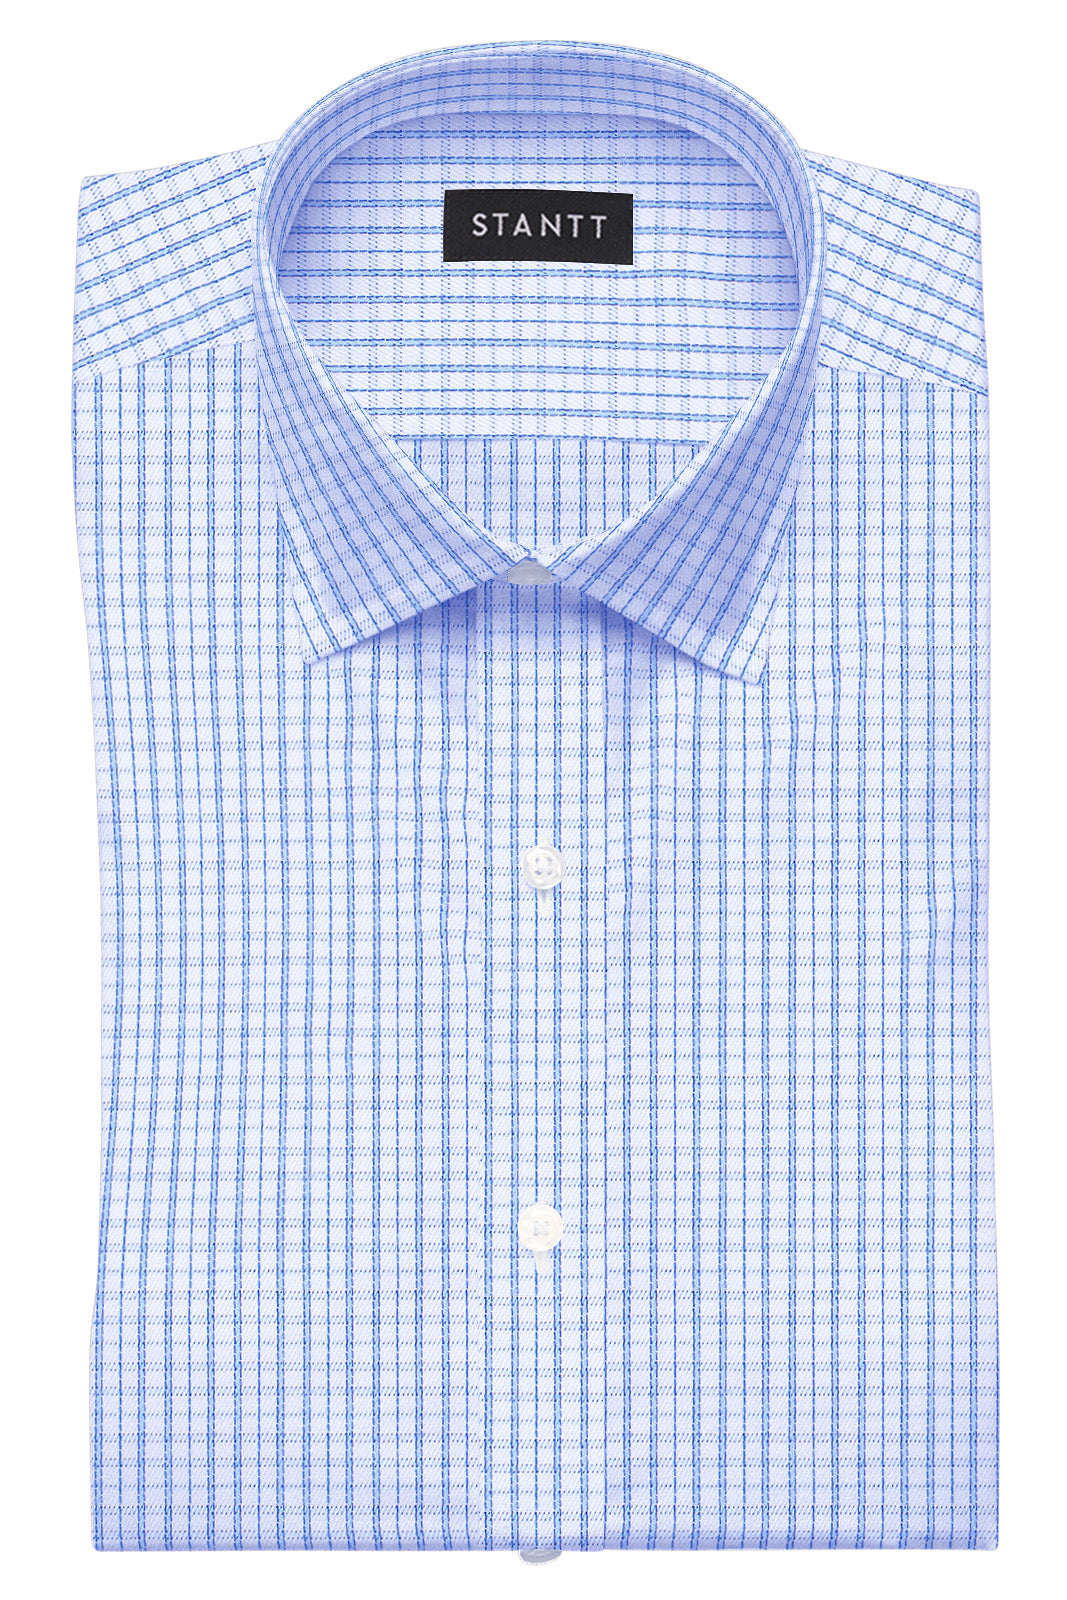 Wrinkle-Resistant Tonal Blue Tattersall: Cutaway Collar, French Cuff